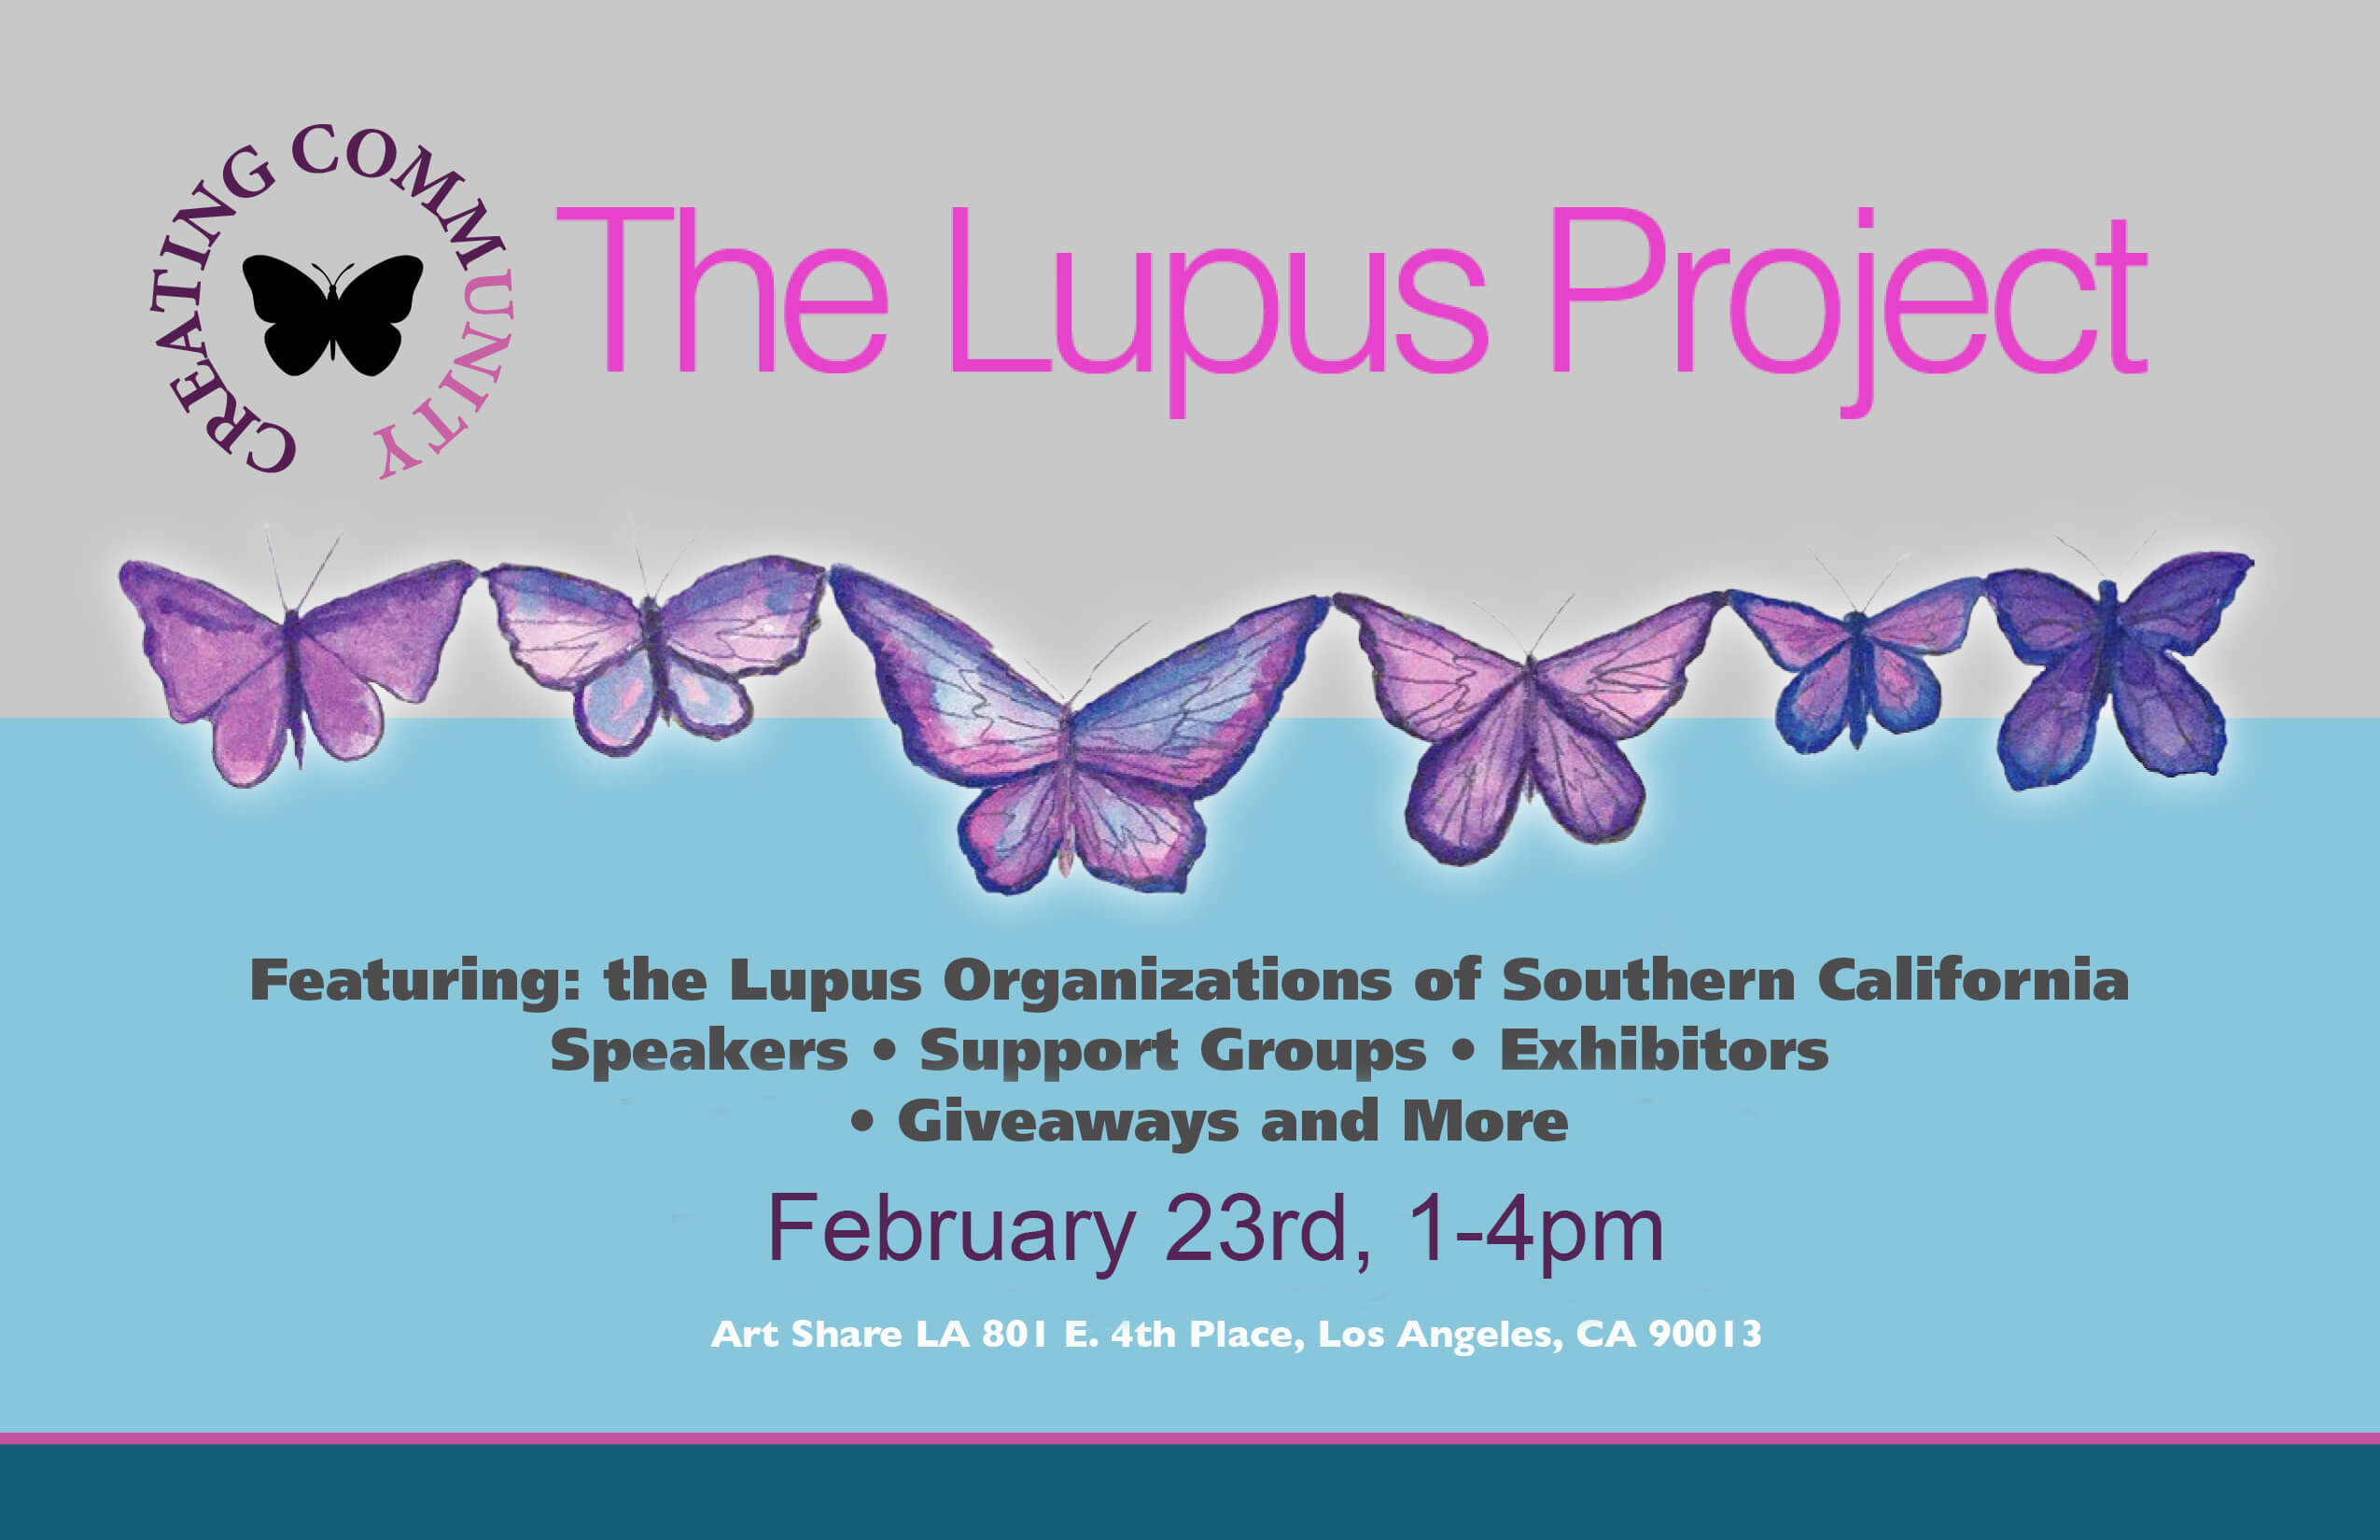 Join Us at the Lupus Project Event on 2/23!